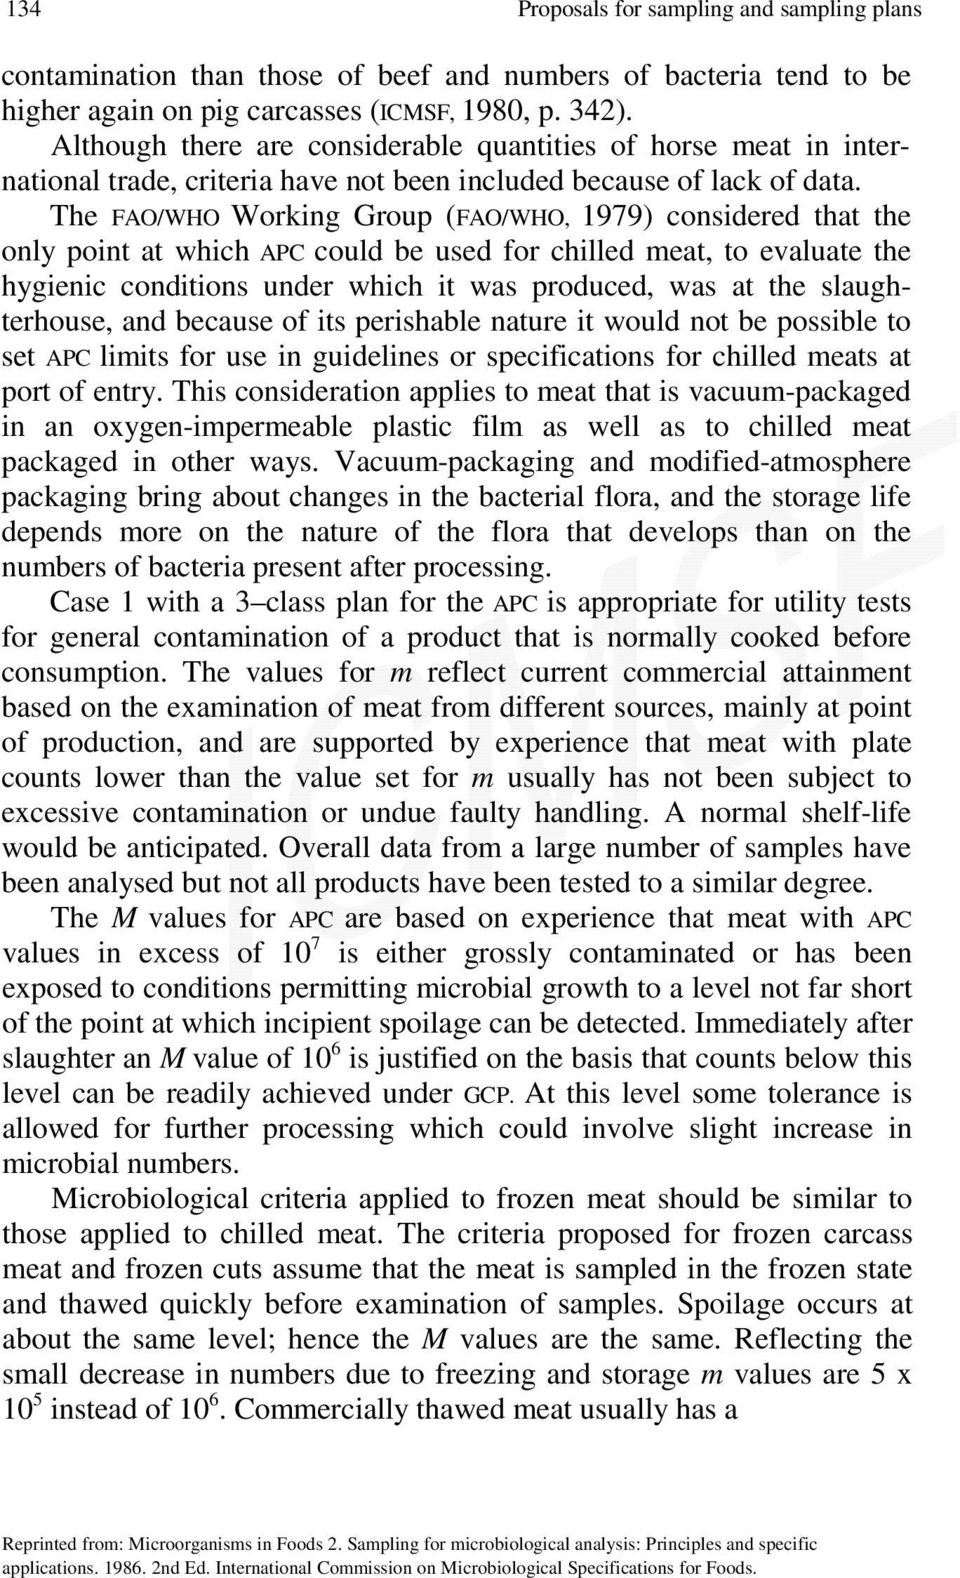 The FAO/WHO Working Group (FAO/WHO, 1979) considered that the only point at which APC could be used for chilled meat, to evaluate the hygienic conditions under which it was produced, was at the